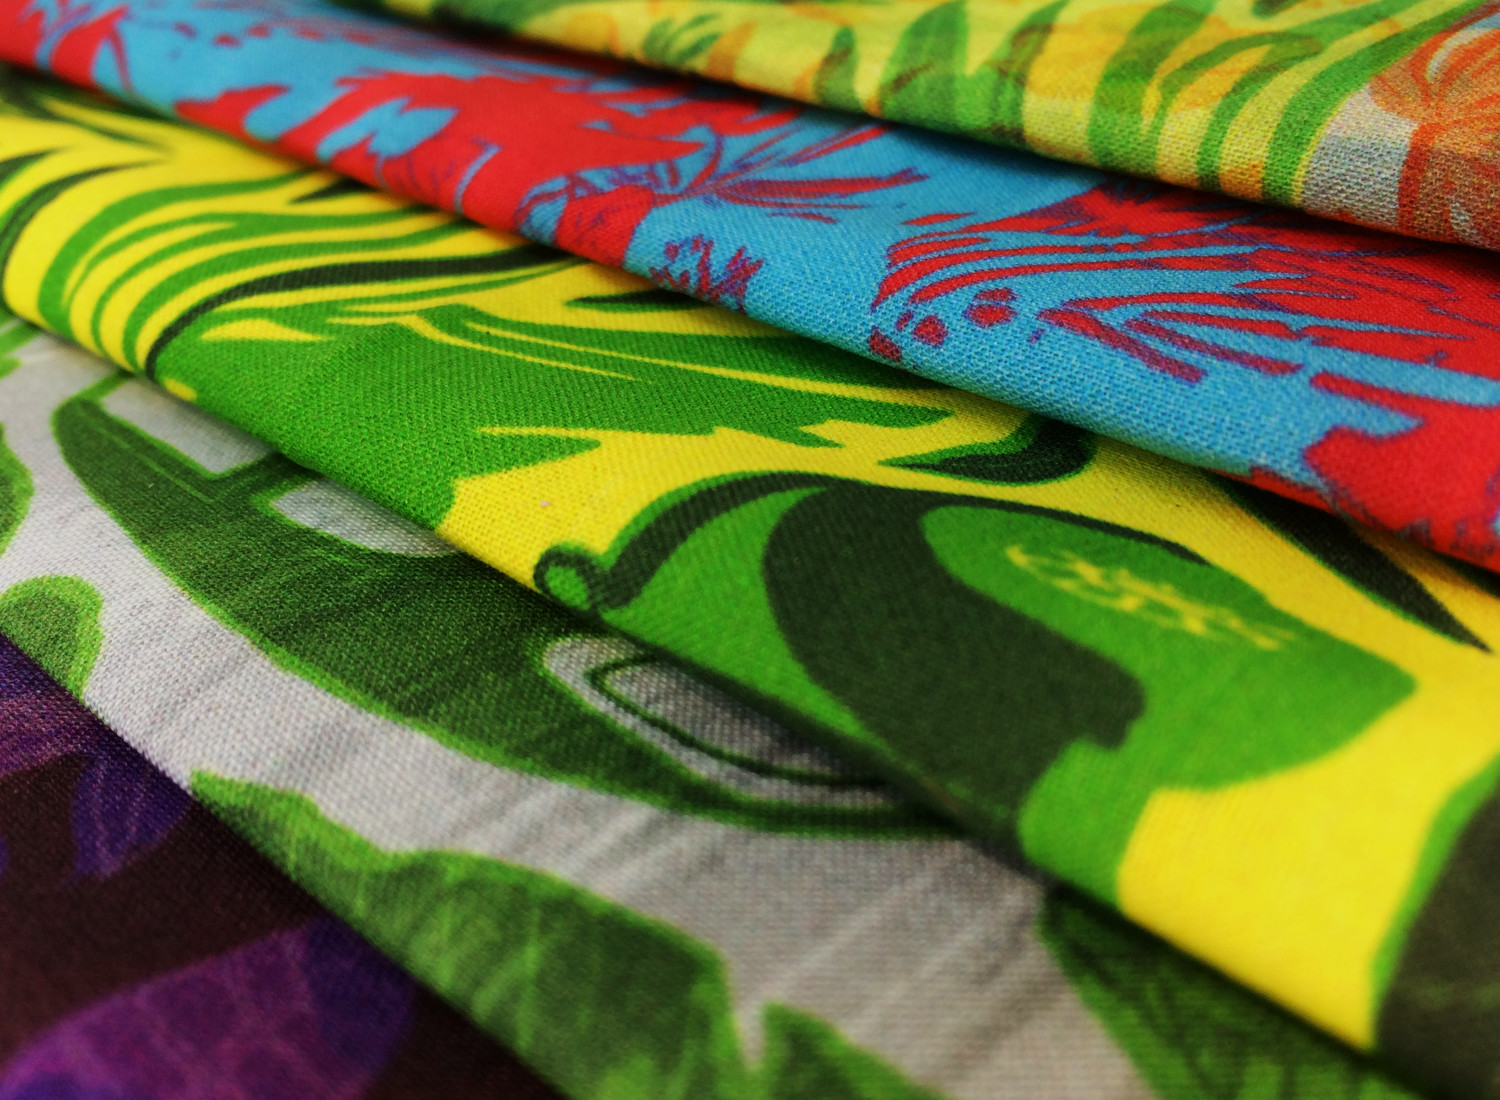 Find fabric from this series on  Spoonflower